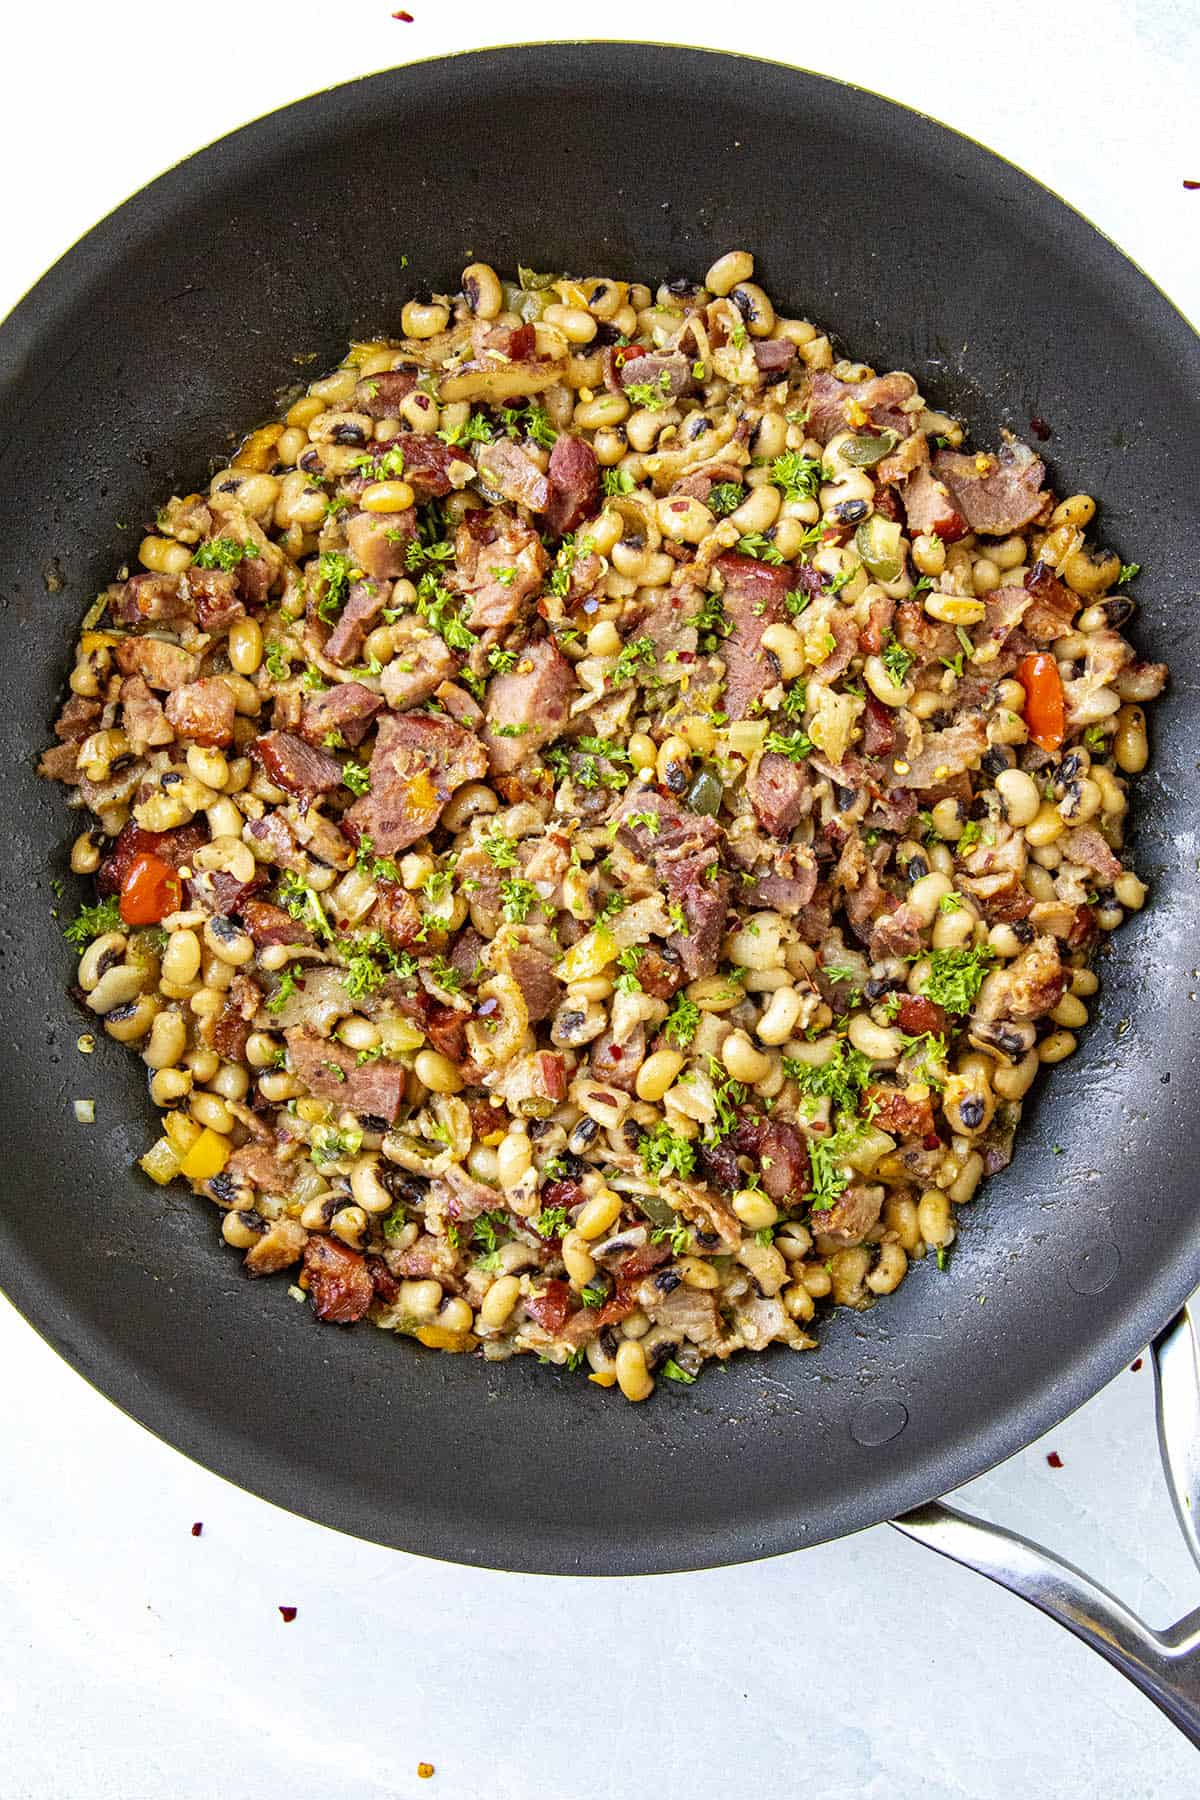 Black Eyed Peas in a pan, ready to serve